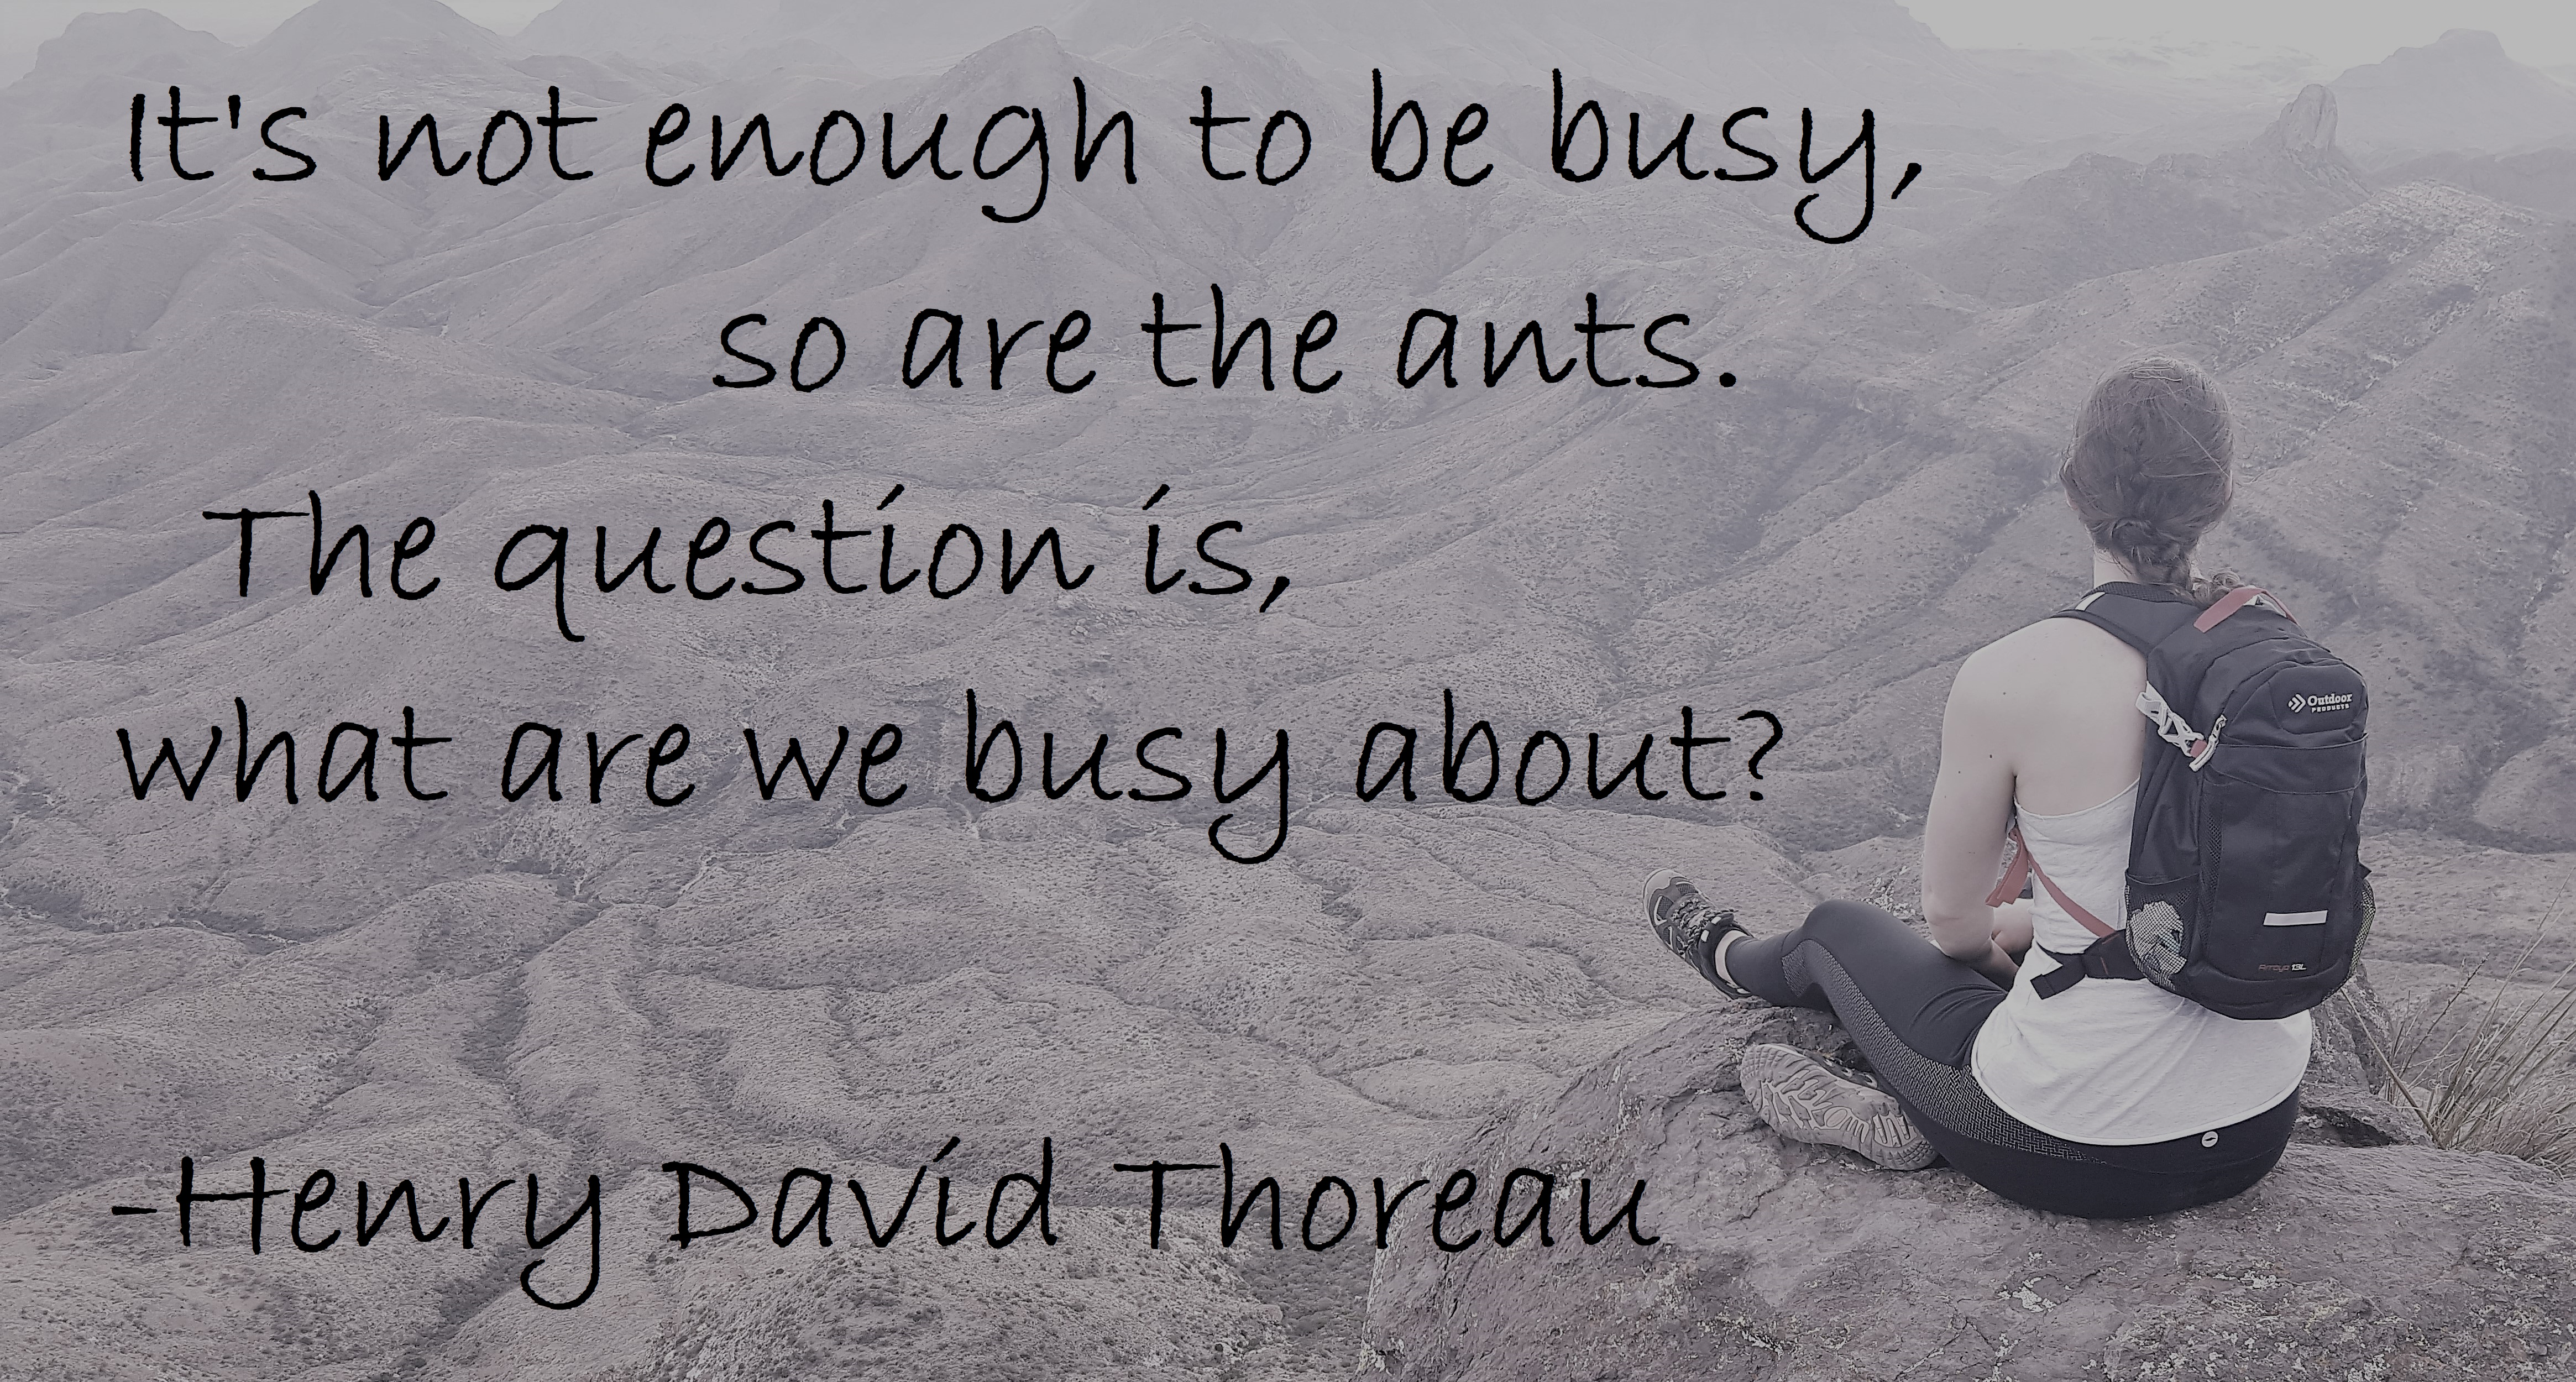 Henry David Thoreau - Not enough to be busy